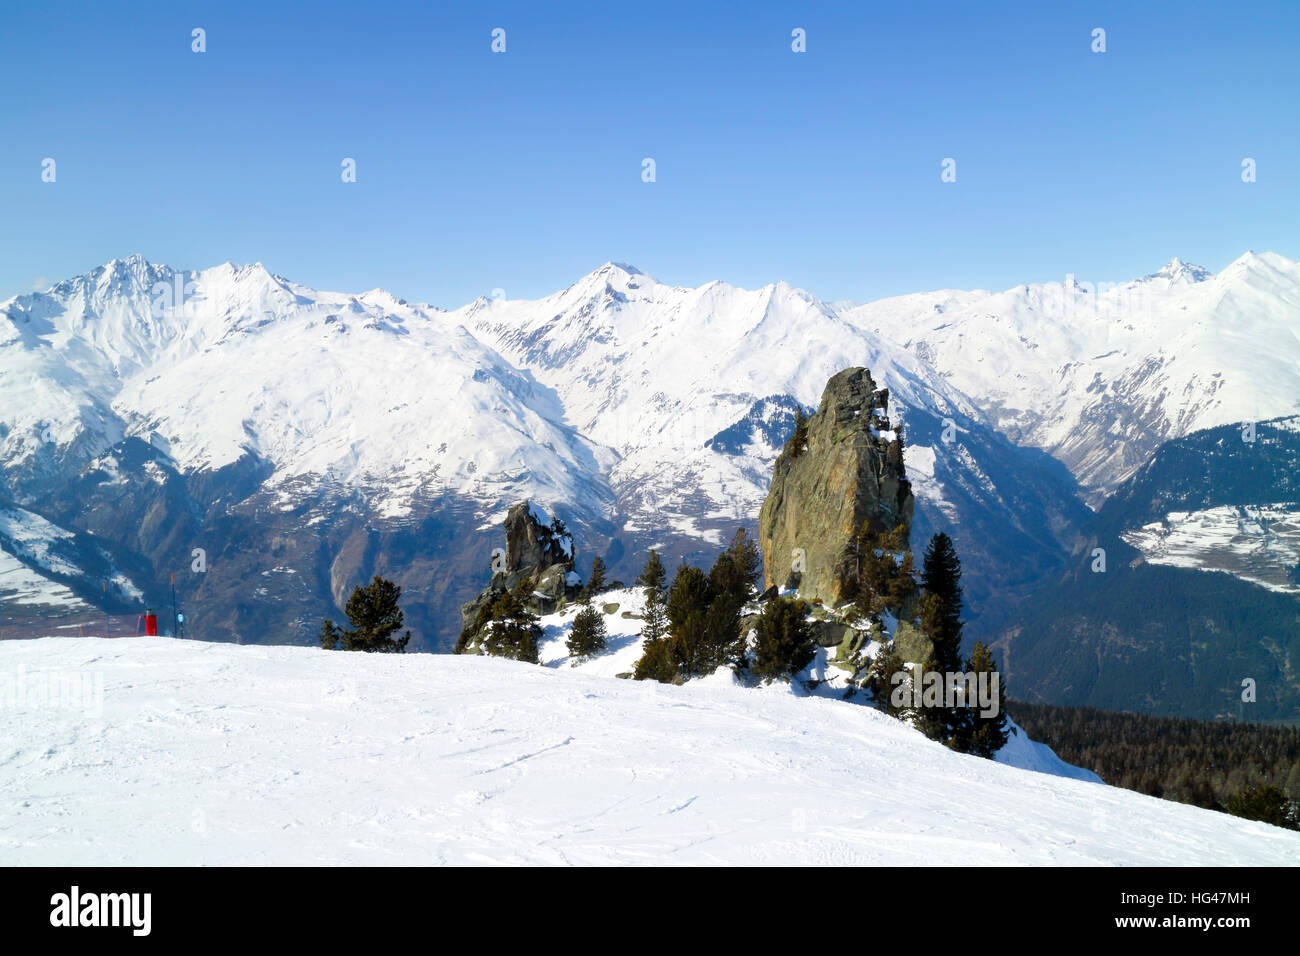 Rock surrounded by pine trees on a skiing slope on the background of alpine peaks in French Alps, Les Arcs, Paradiski - Stock Image